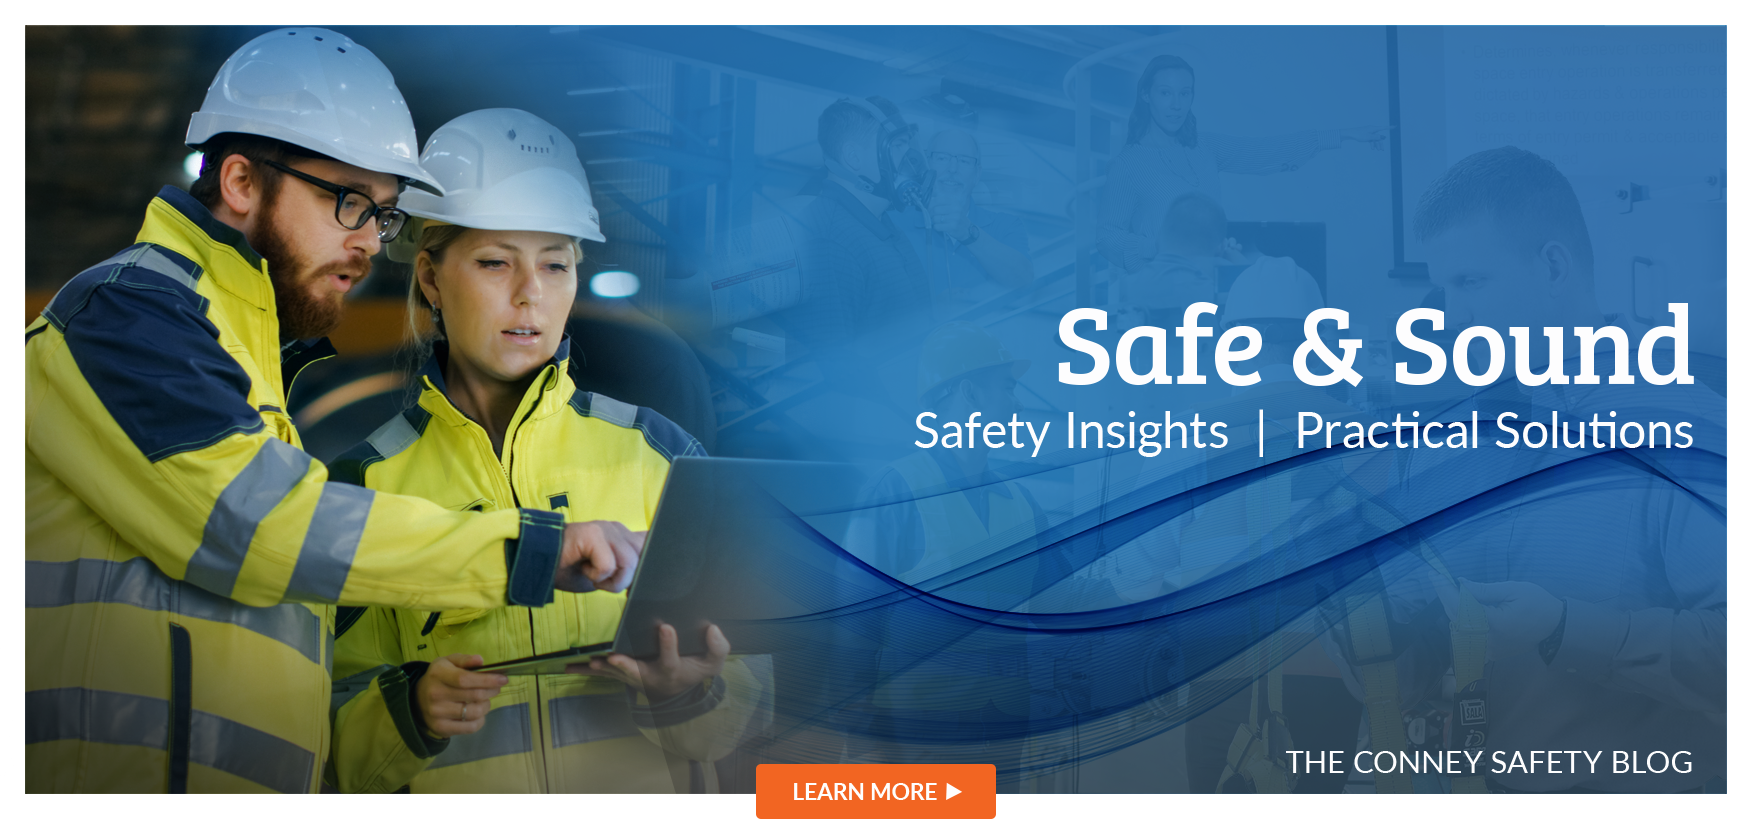 The Conney Safety Blog - Safe and Sound